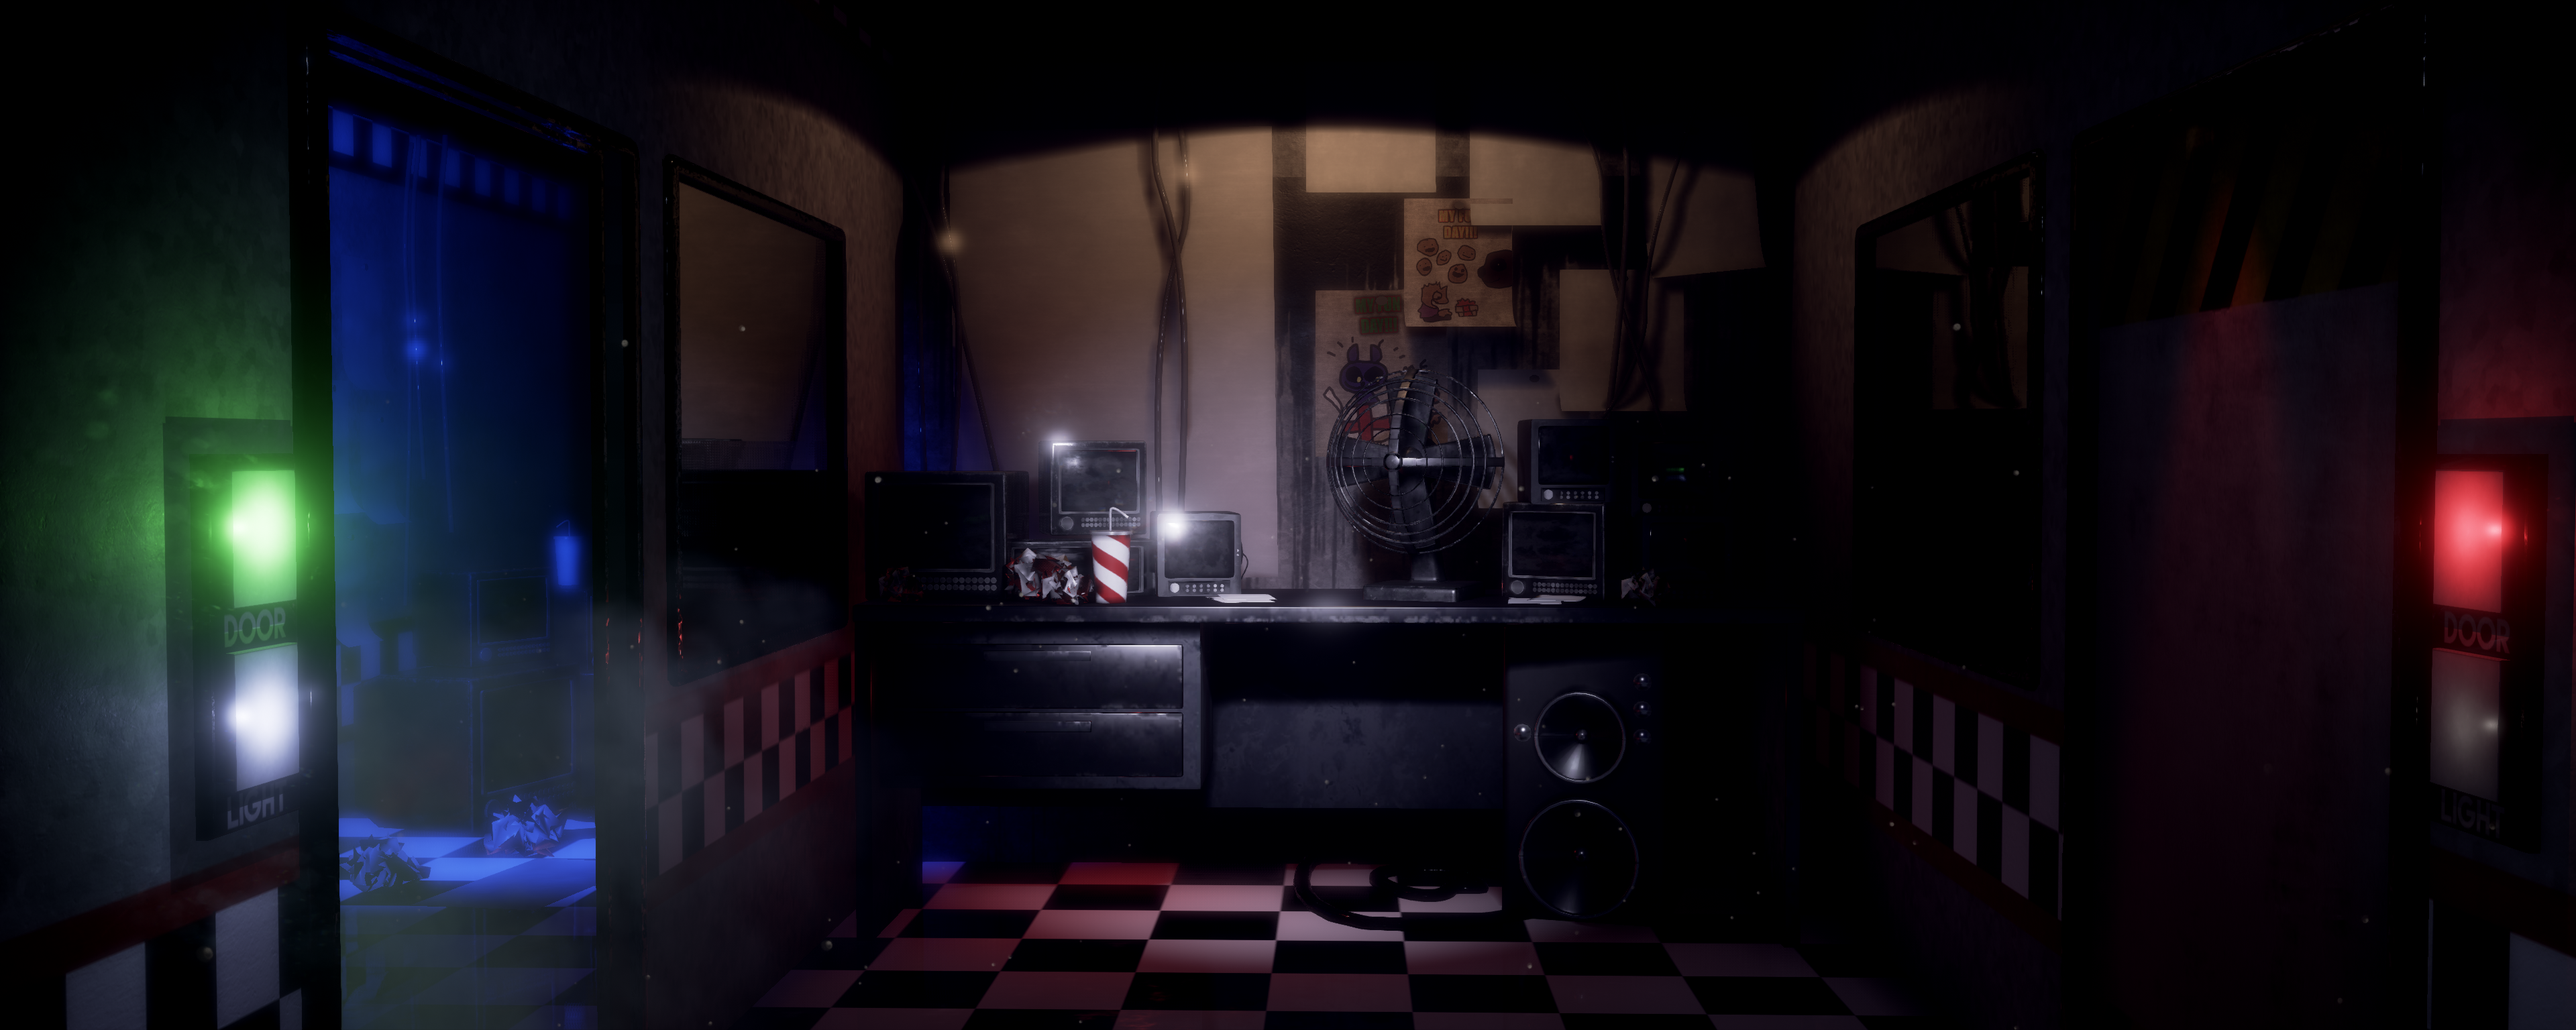 Found this FNaF 1 Office I modeled a couple of months ago